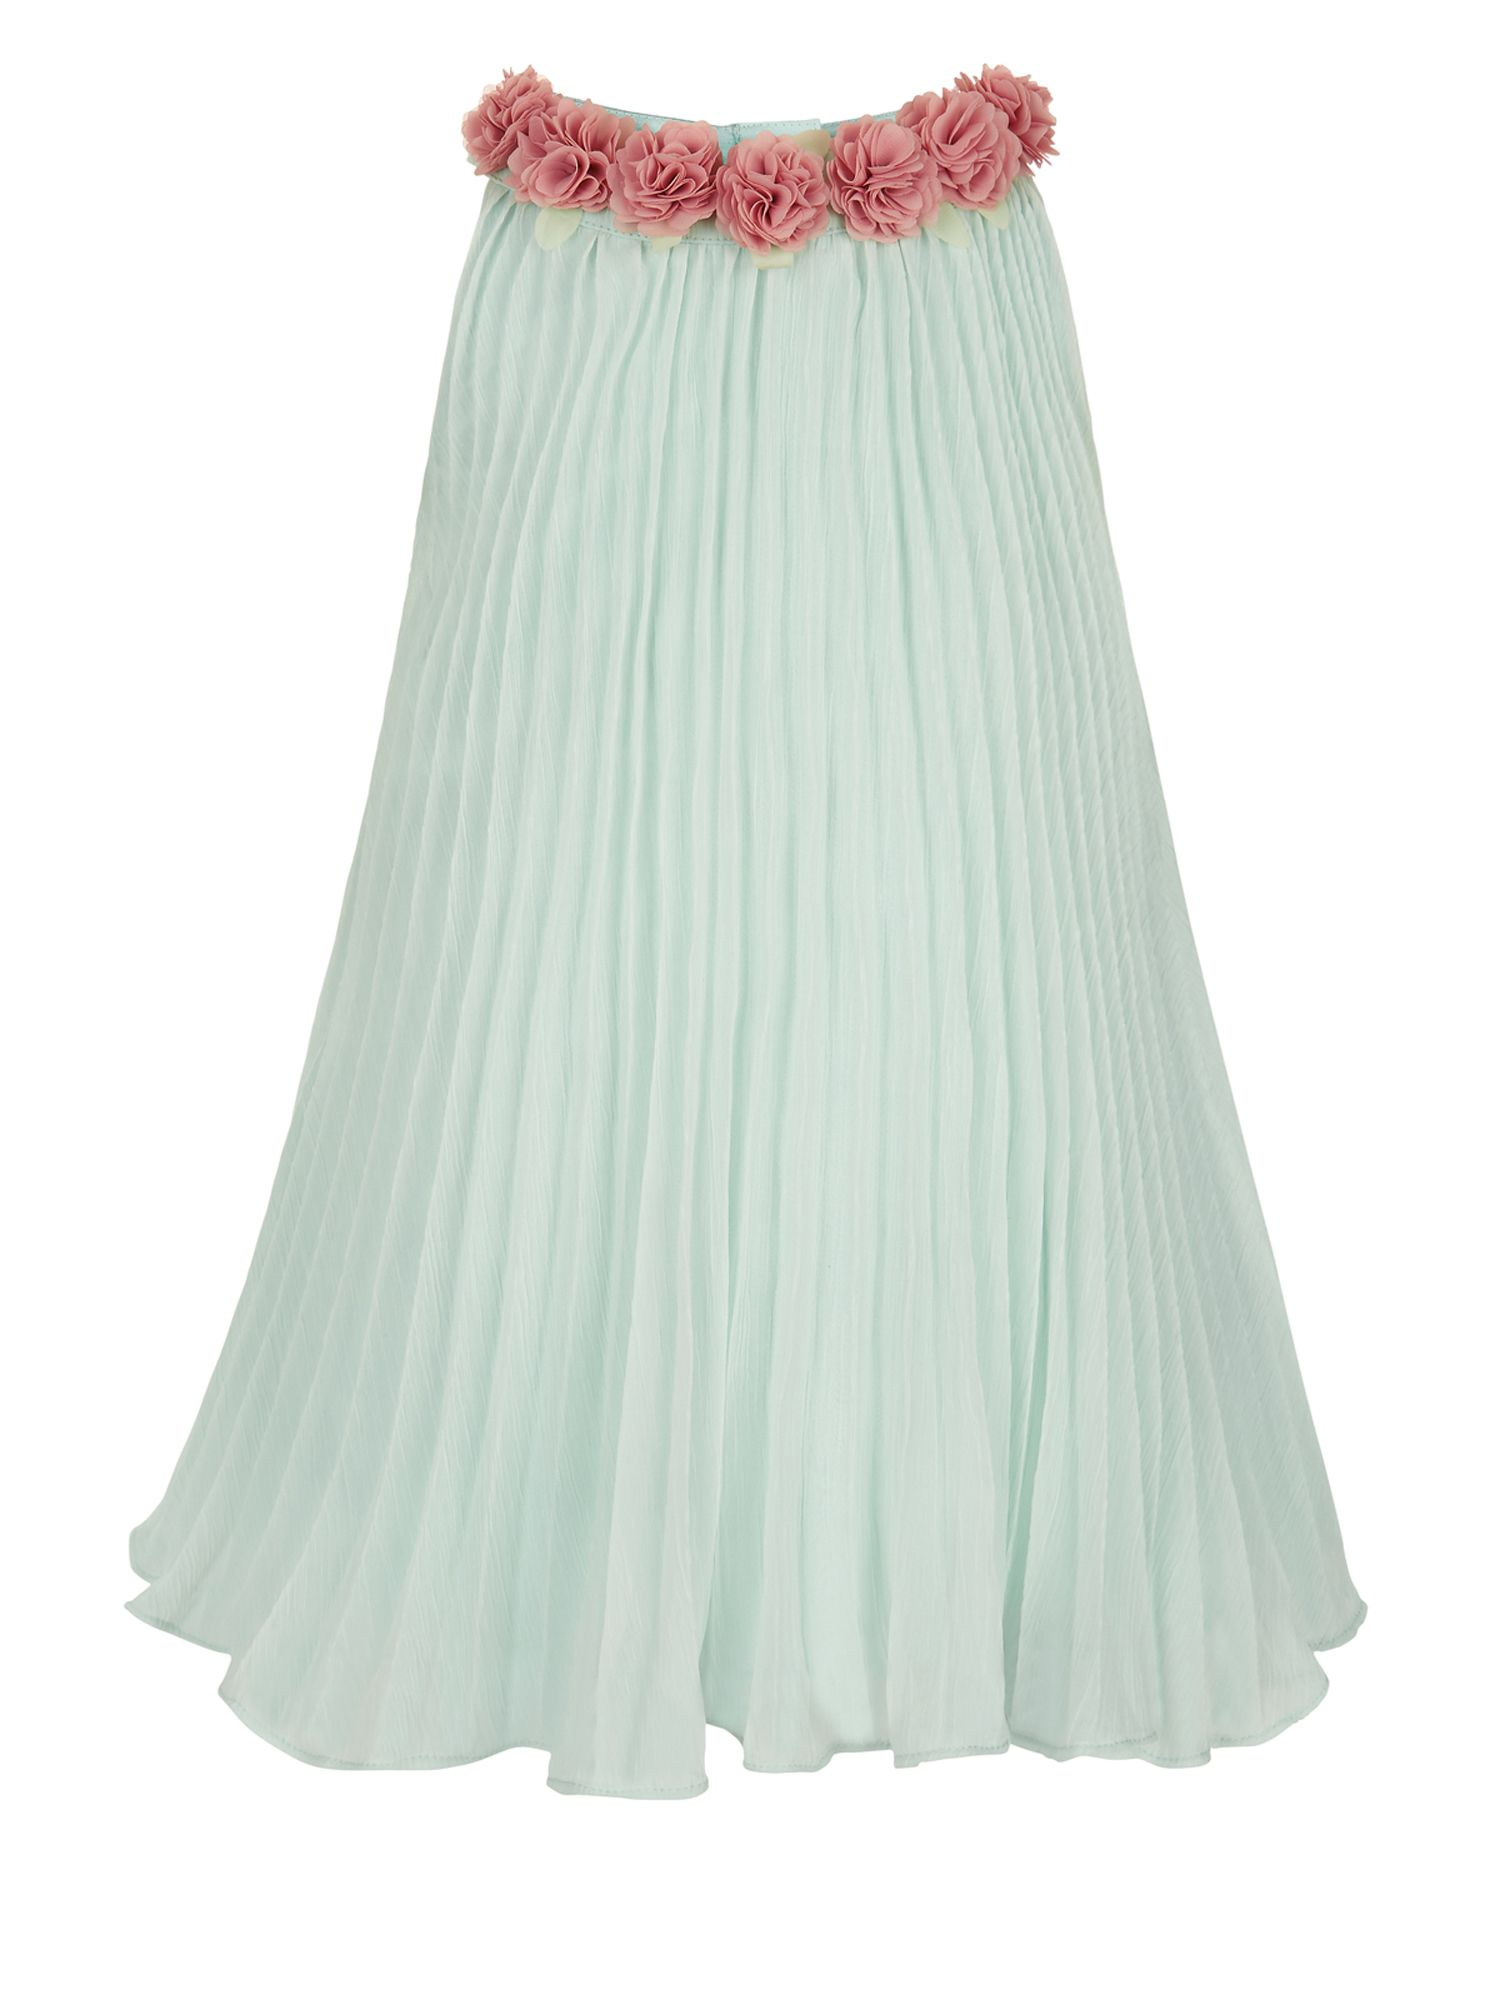 Green Baby Dress House of Fraser